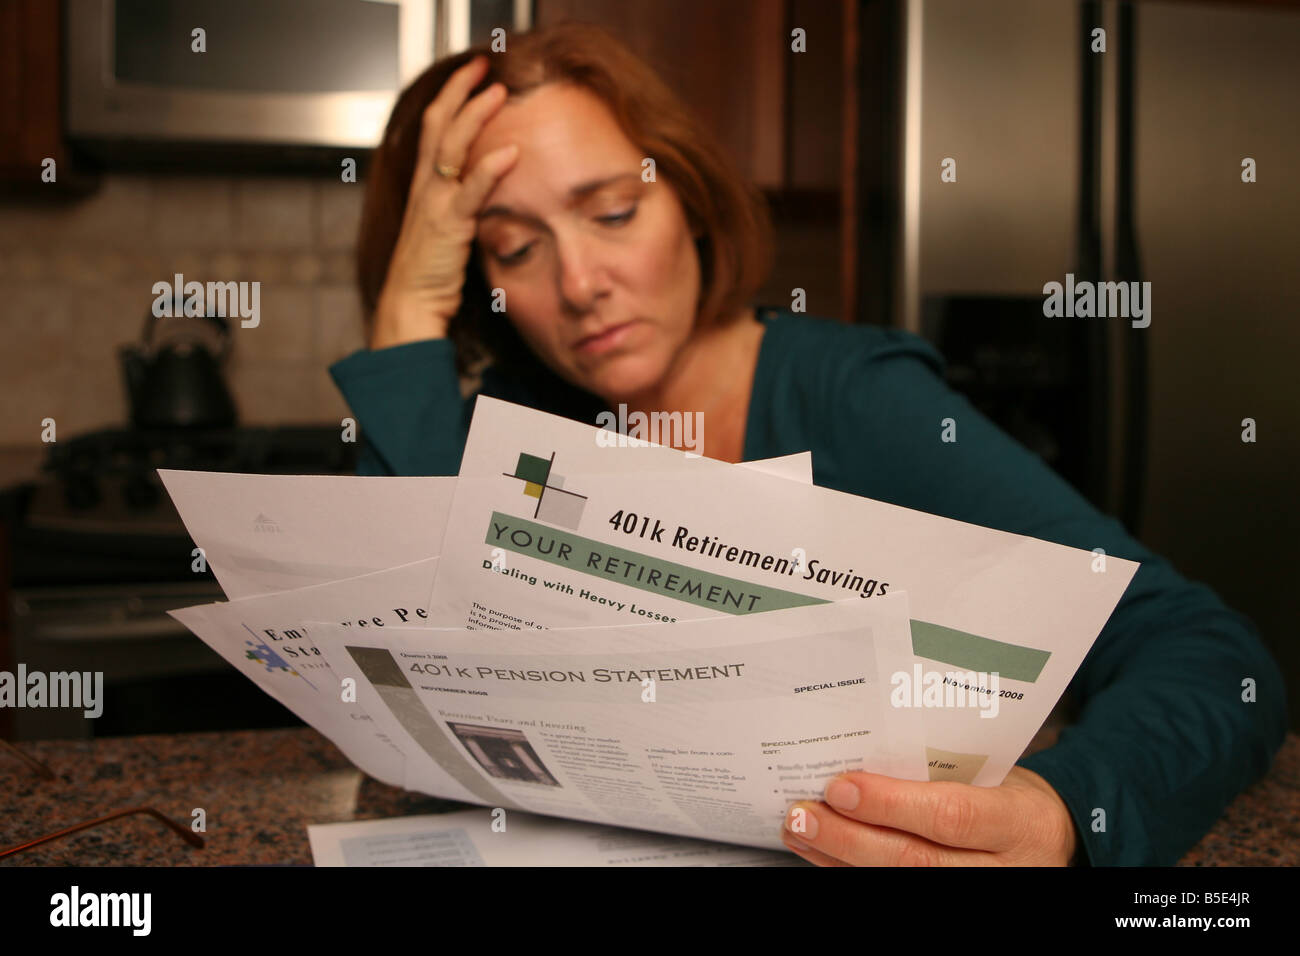 A woman is gripped by worry and anxiety as she looks over her investment statements. - Stock Image